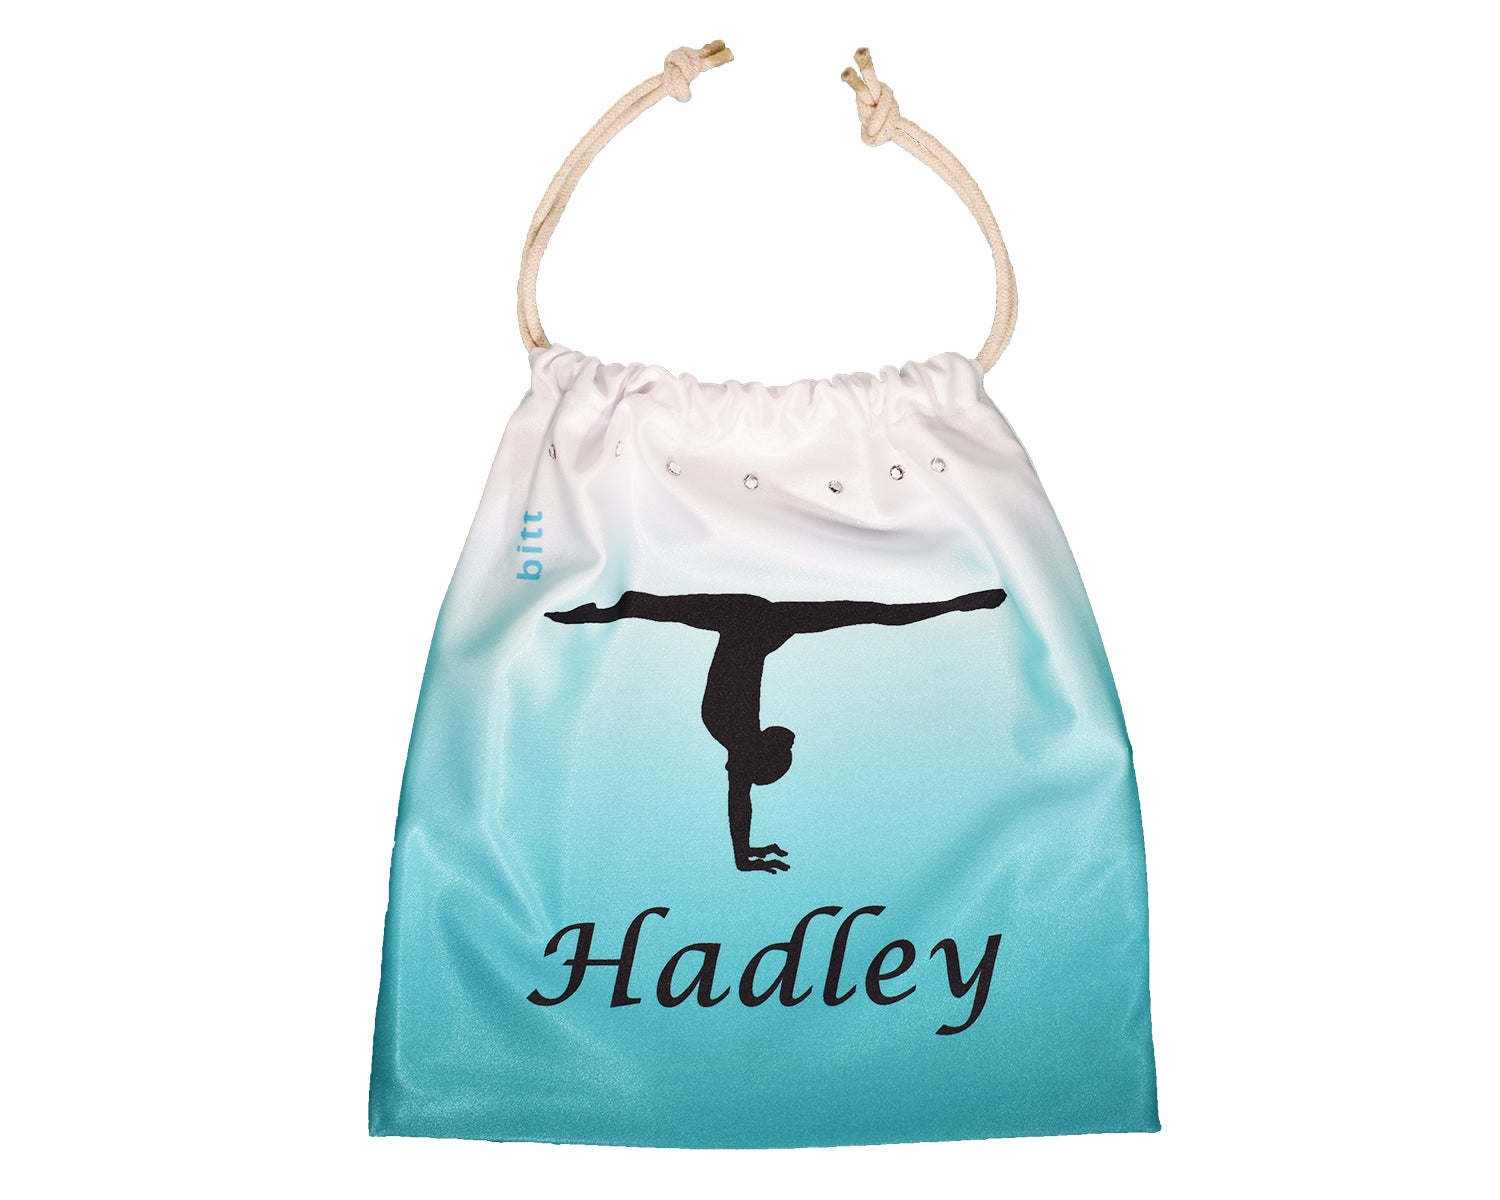 Teal Ombre Handstand Gymnastics Grip Bag